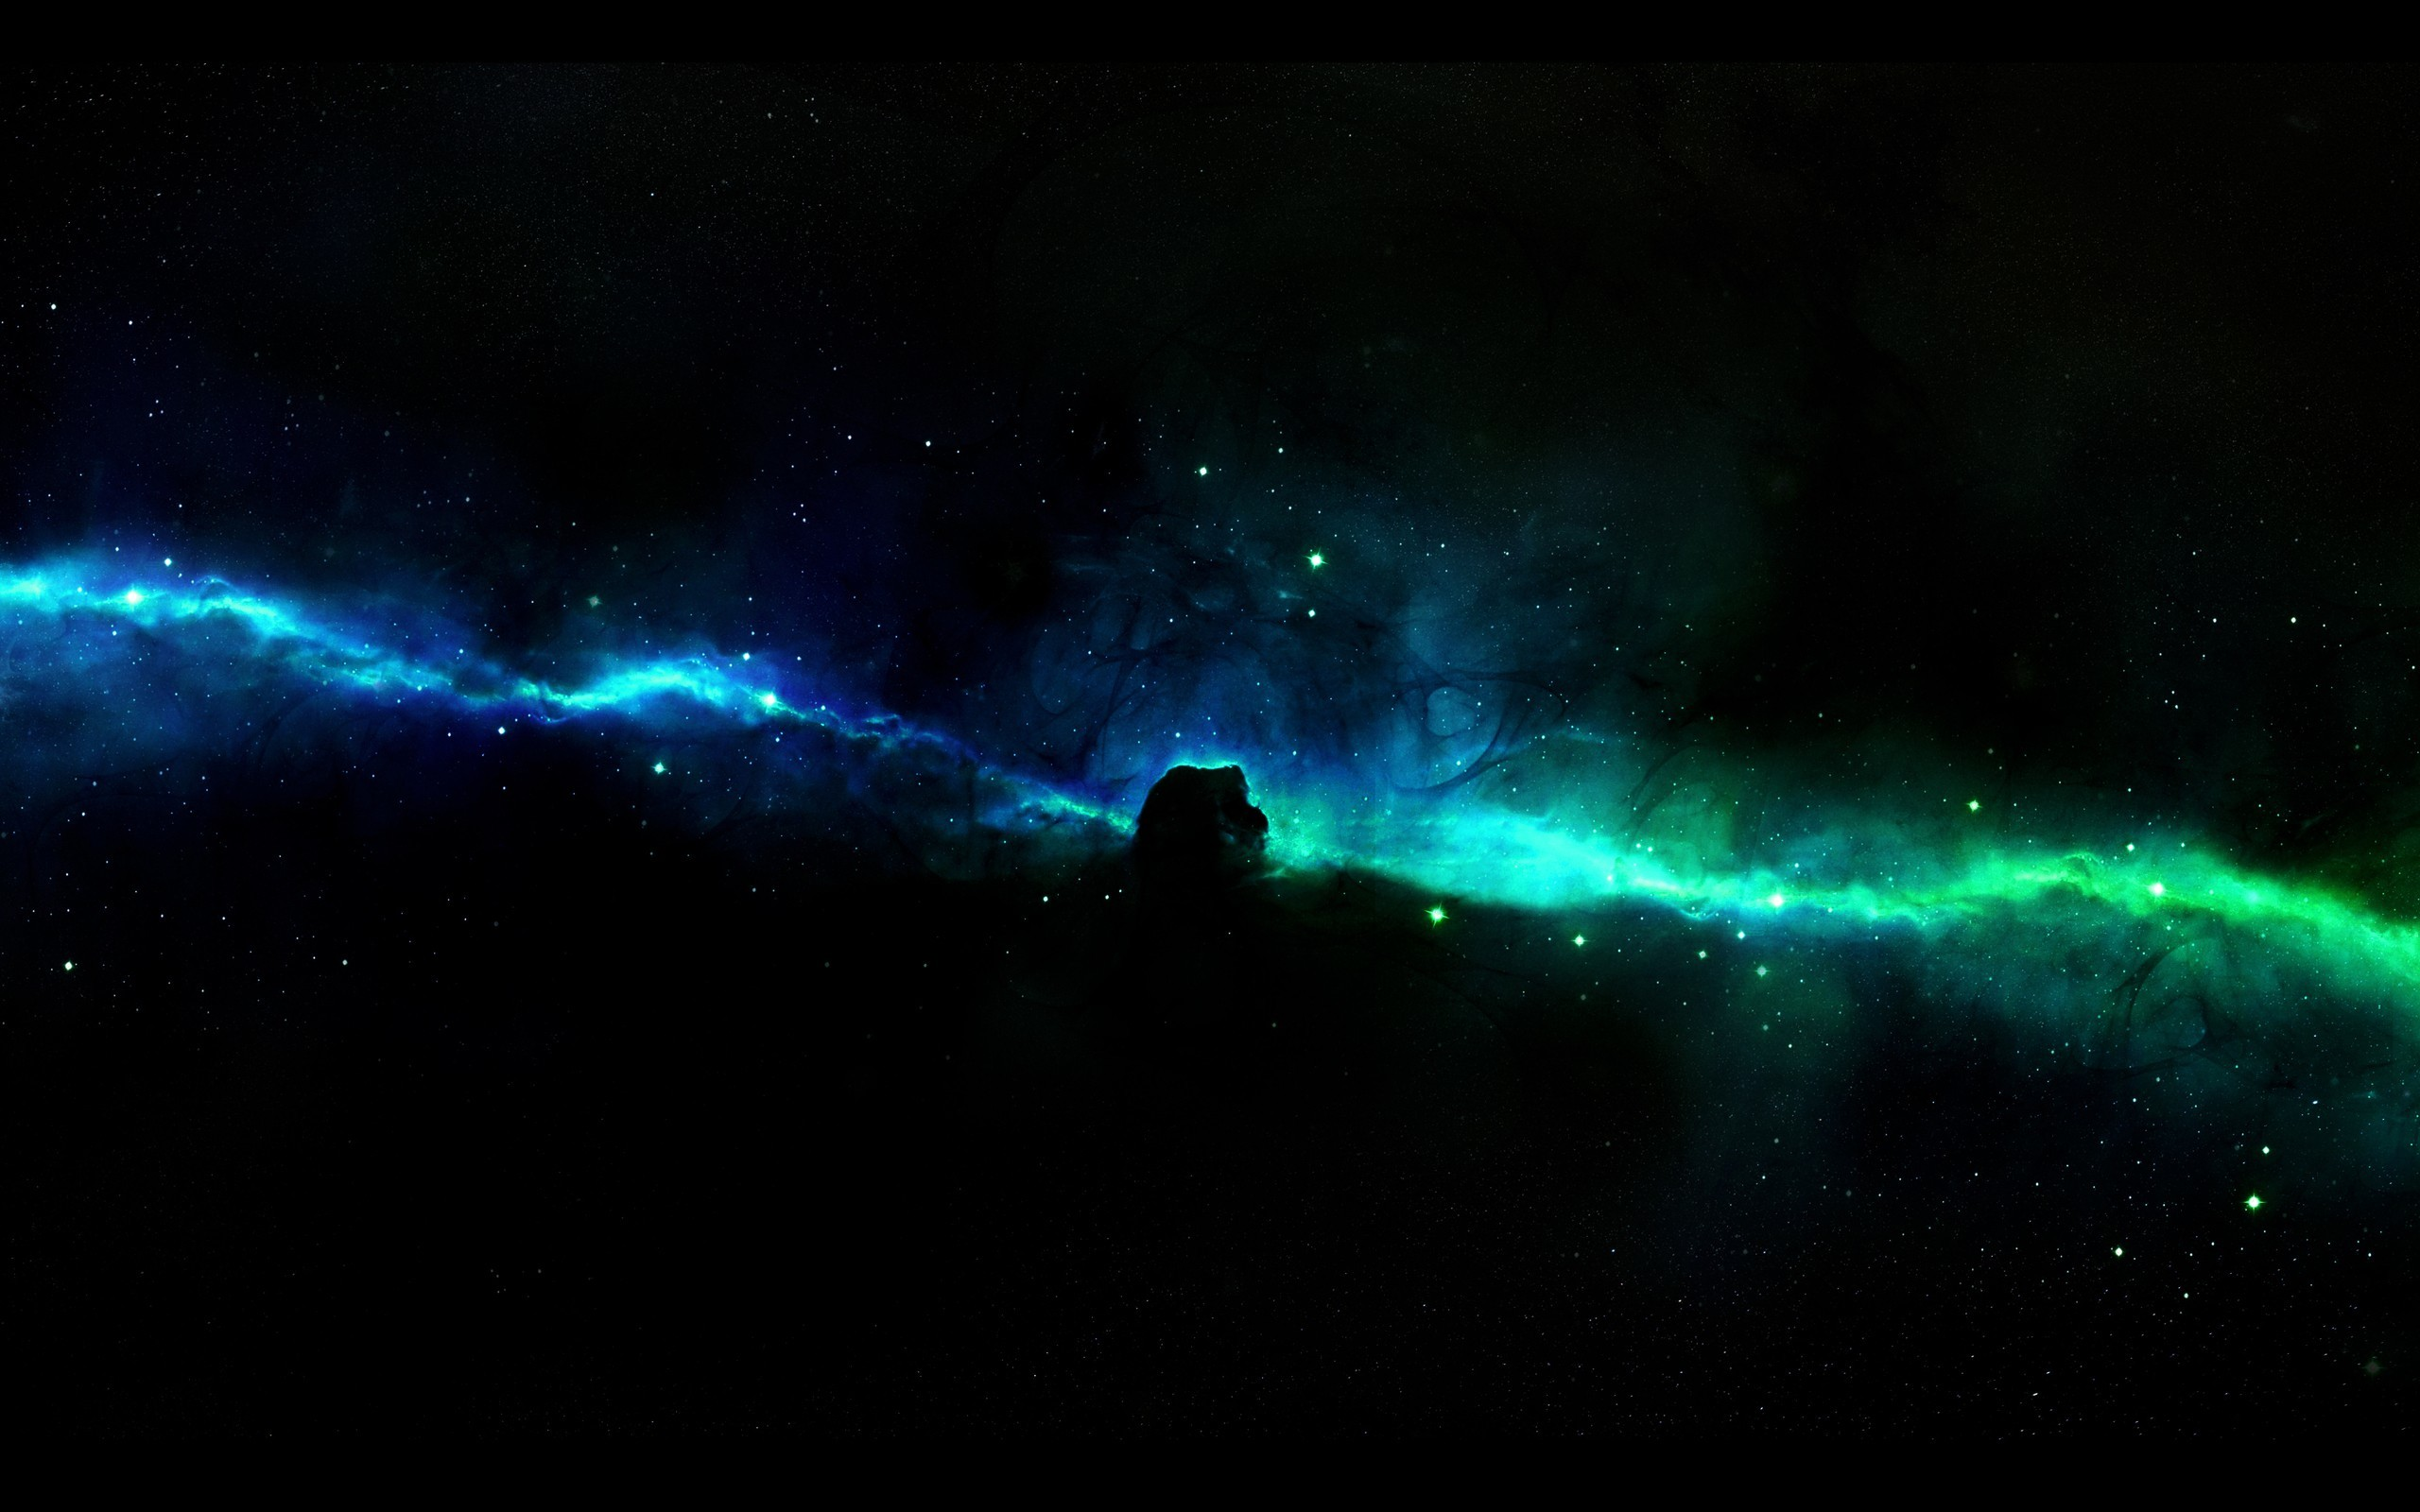 Tags: Galaxy. Category: Space